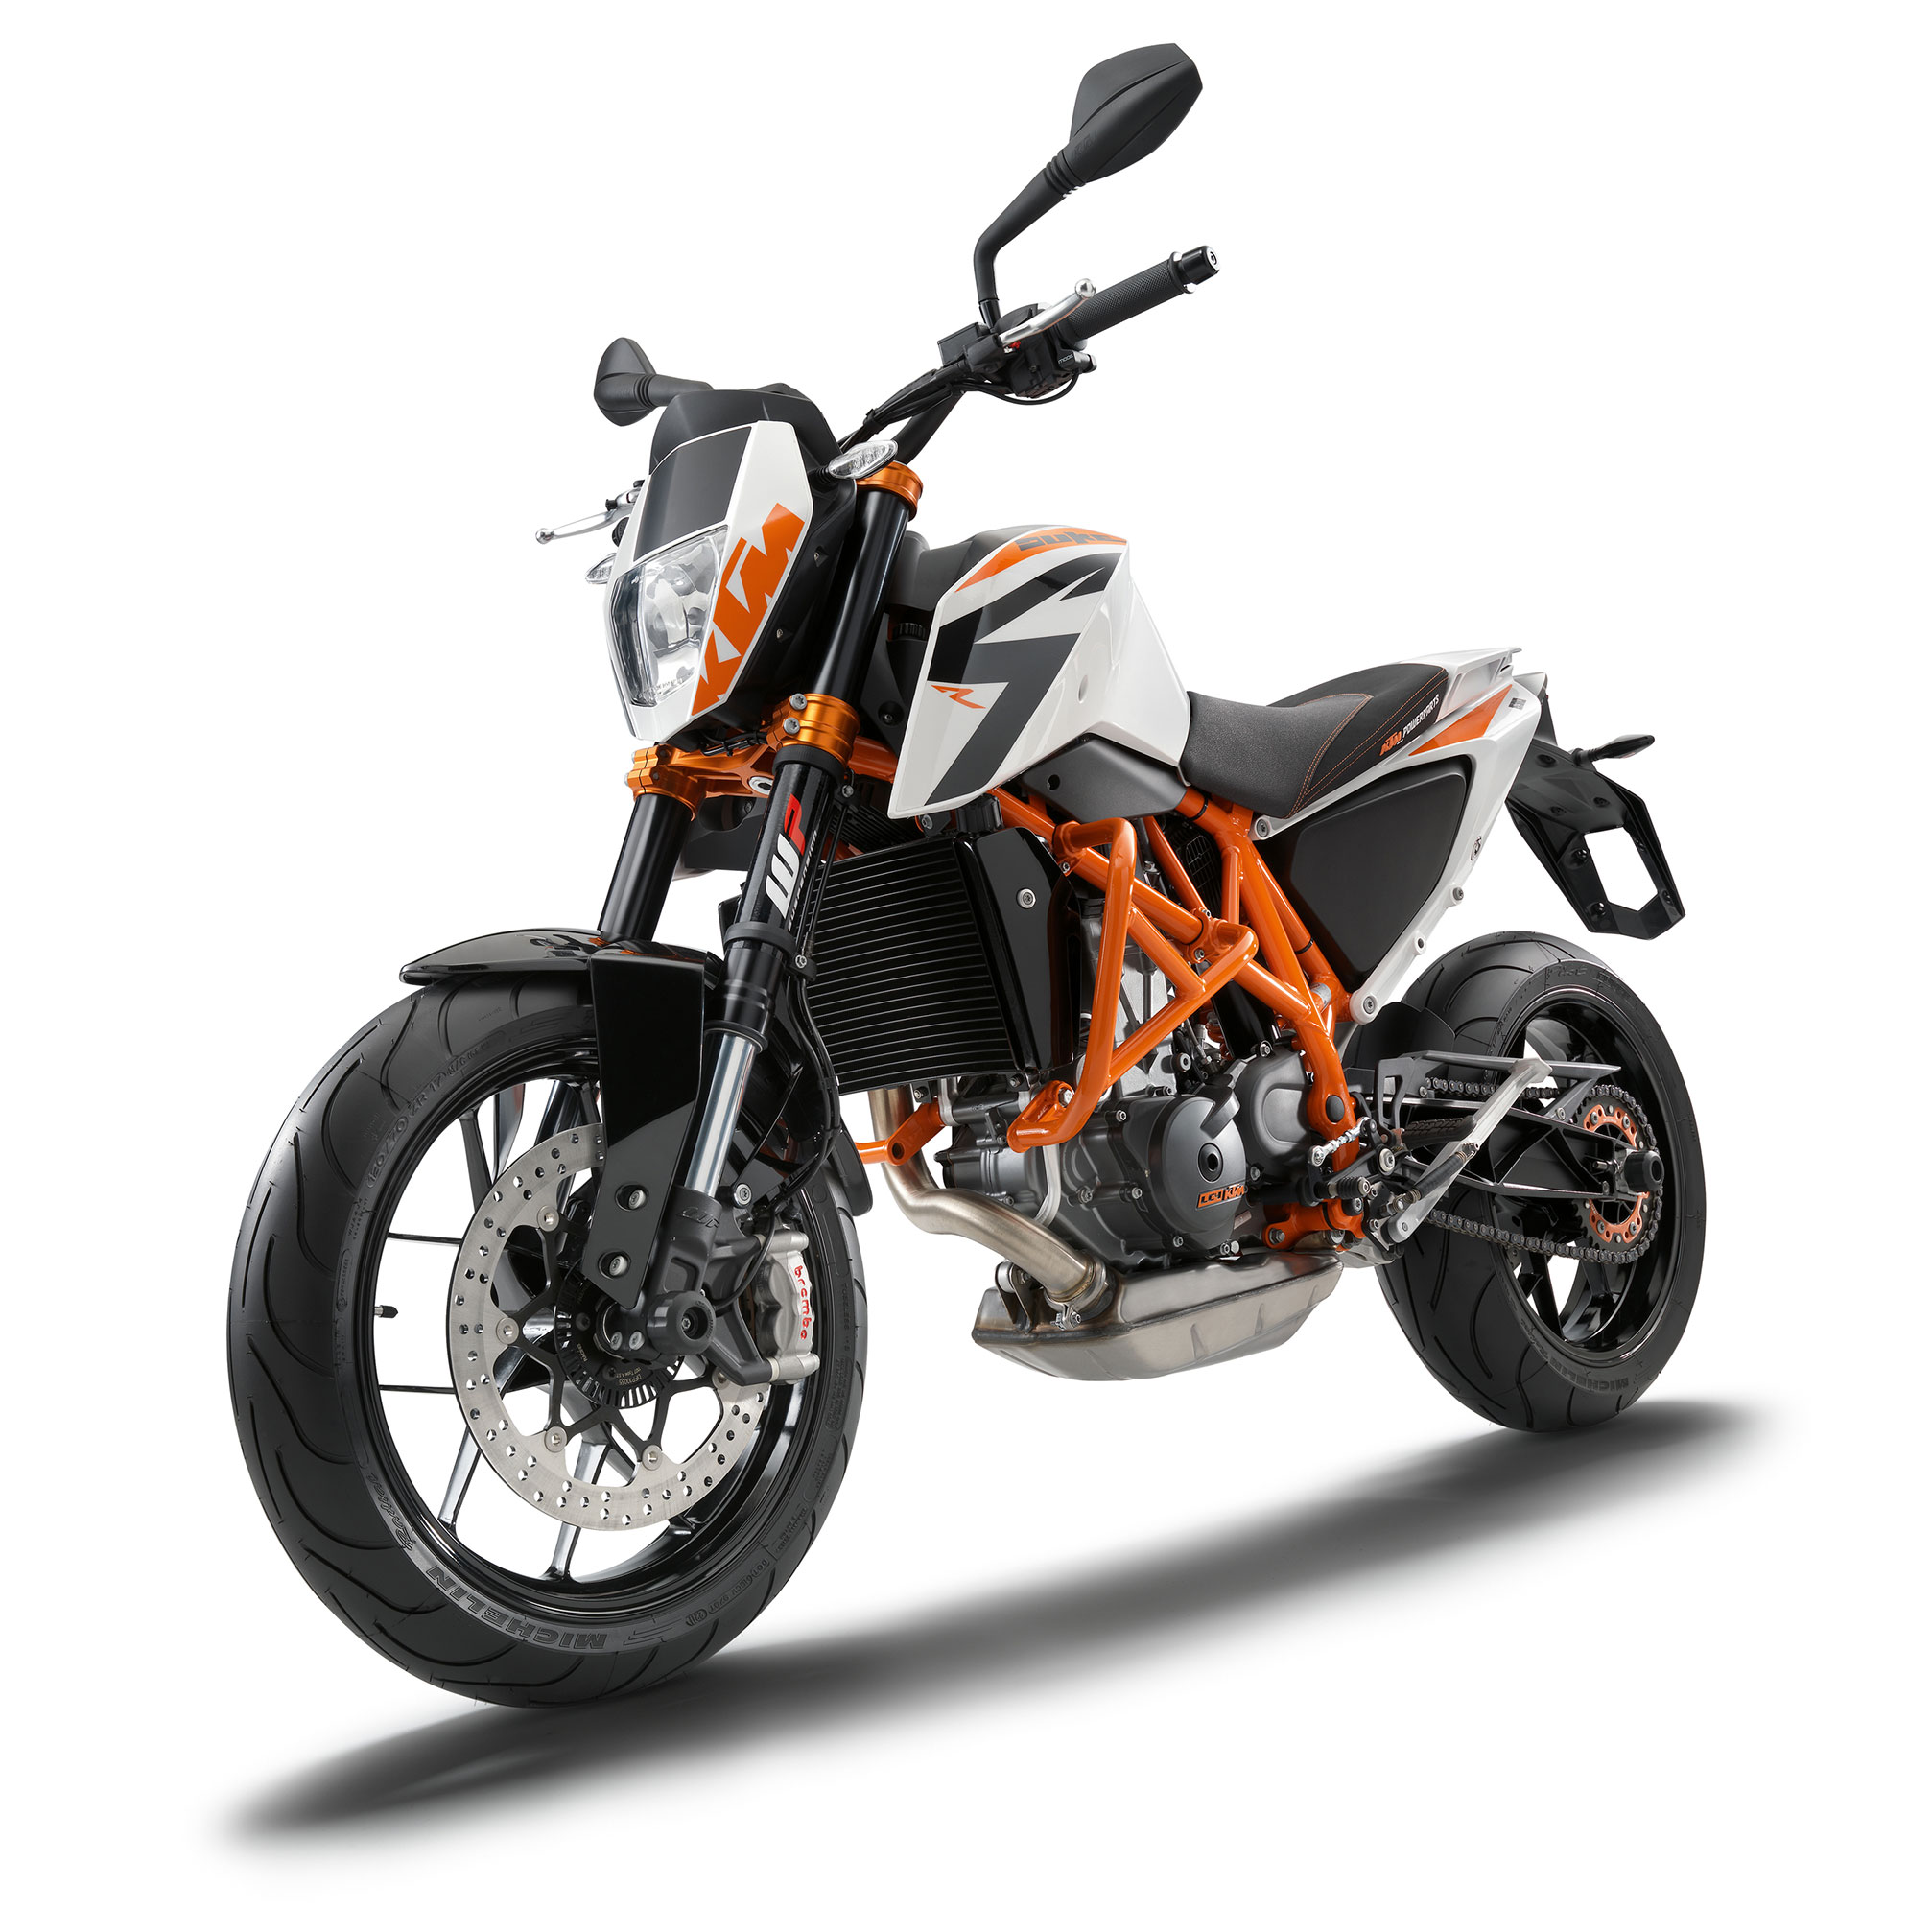 2014 ktm 690 duke r review. Black Bedroom Furniture Sets. Home Design Ideas